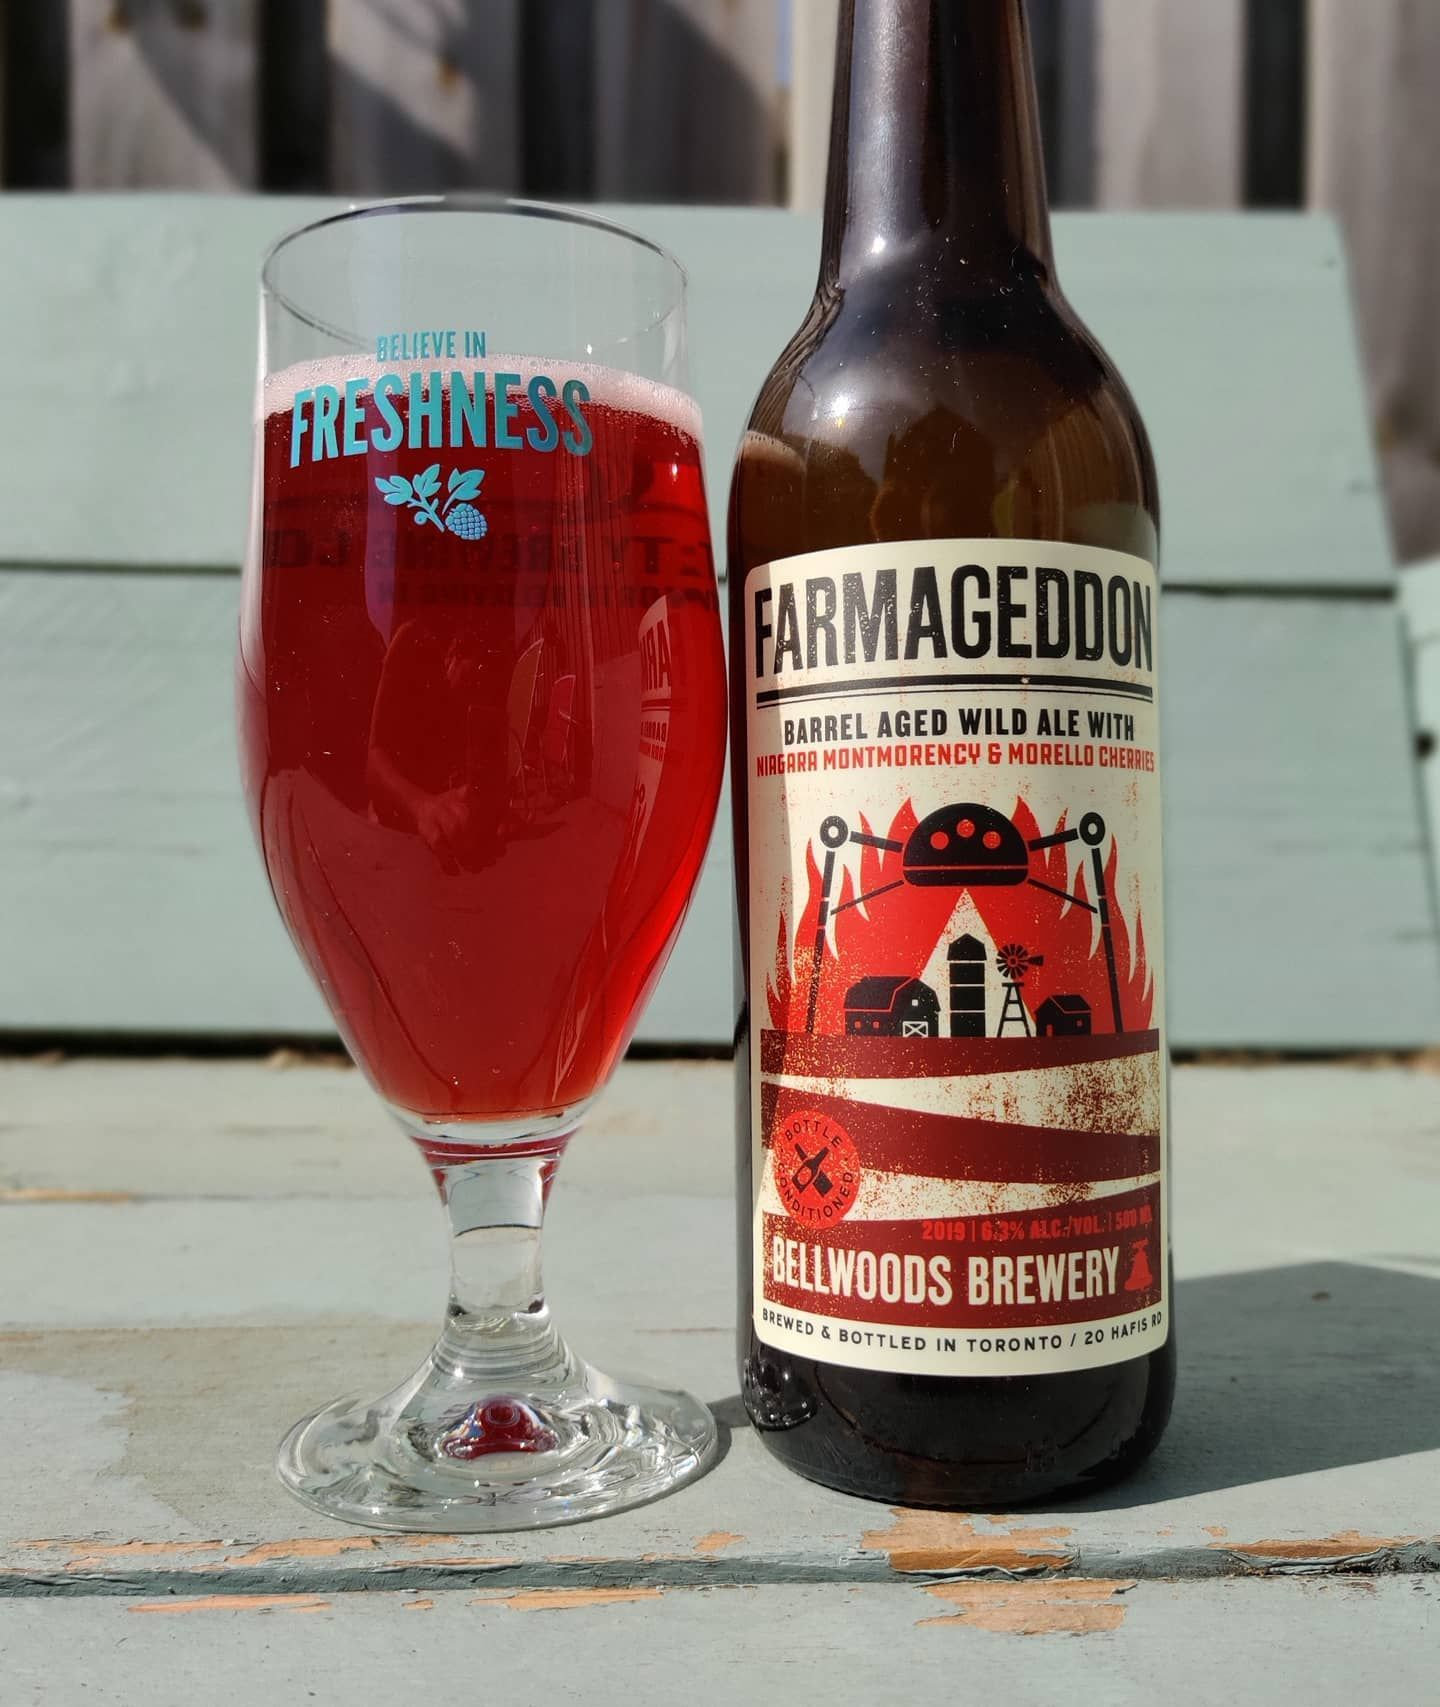 Bellwoodsbeer Farmageddon Barrel Aged Wild Ale With Niagara Montmorency Morello Cherries Little Bit Is Cherries In The Nose Together With Some Funk Good In 2020